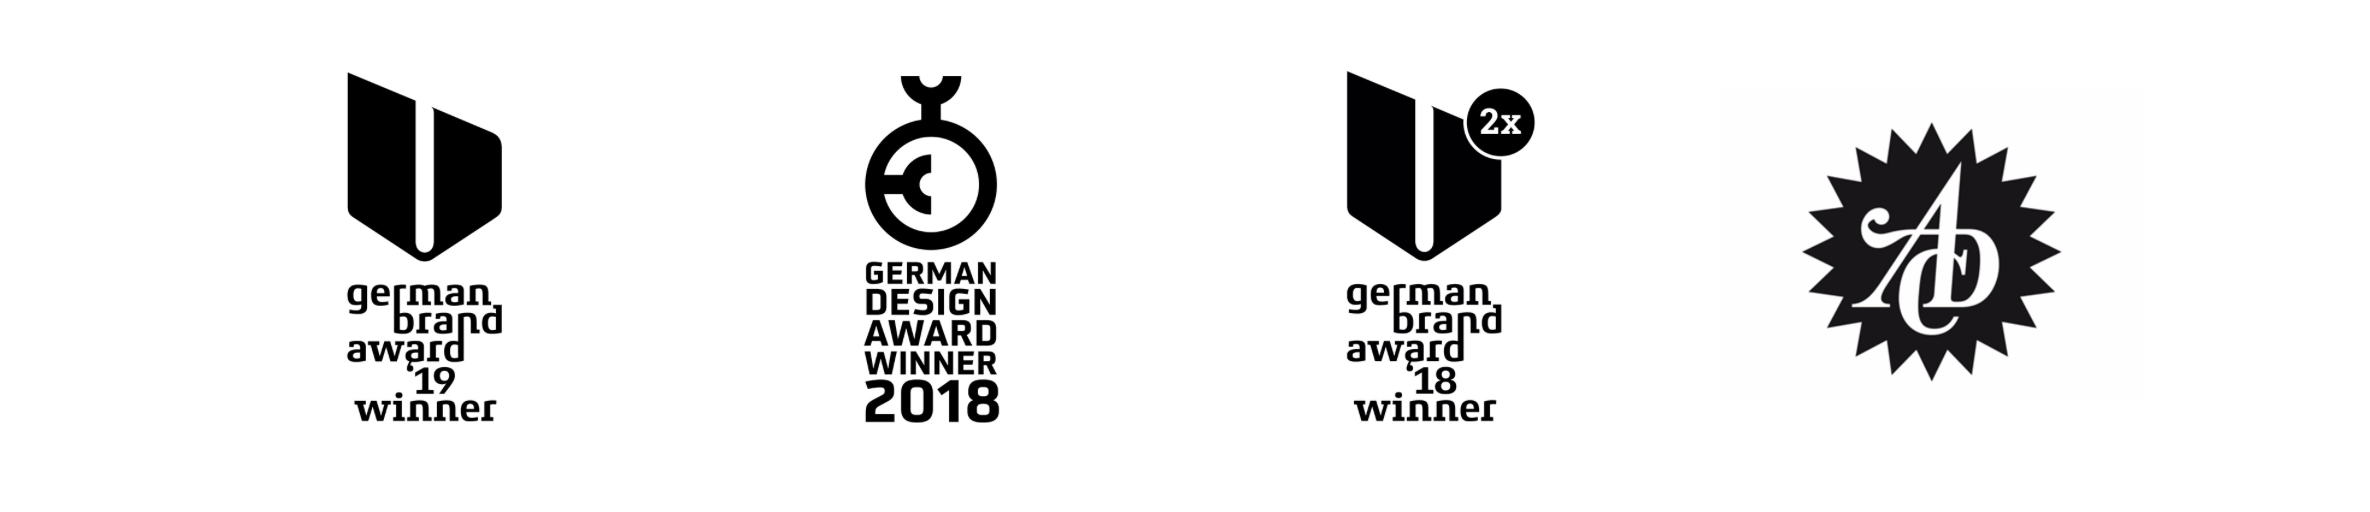 new-office-awards-2019